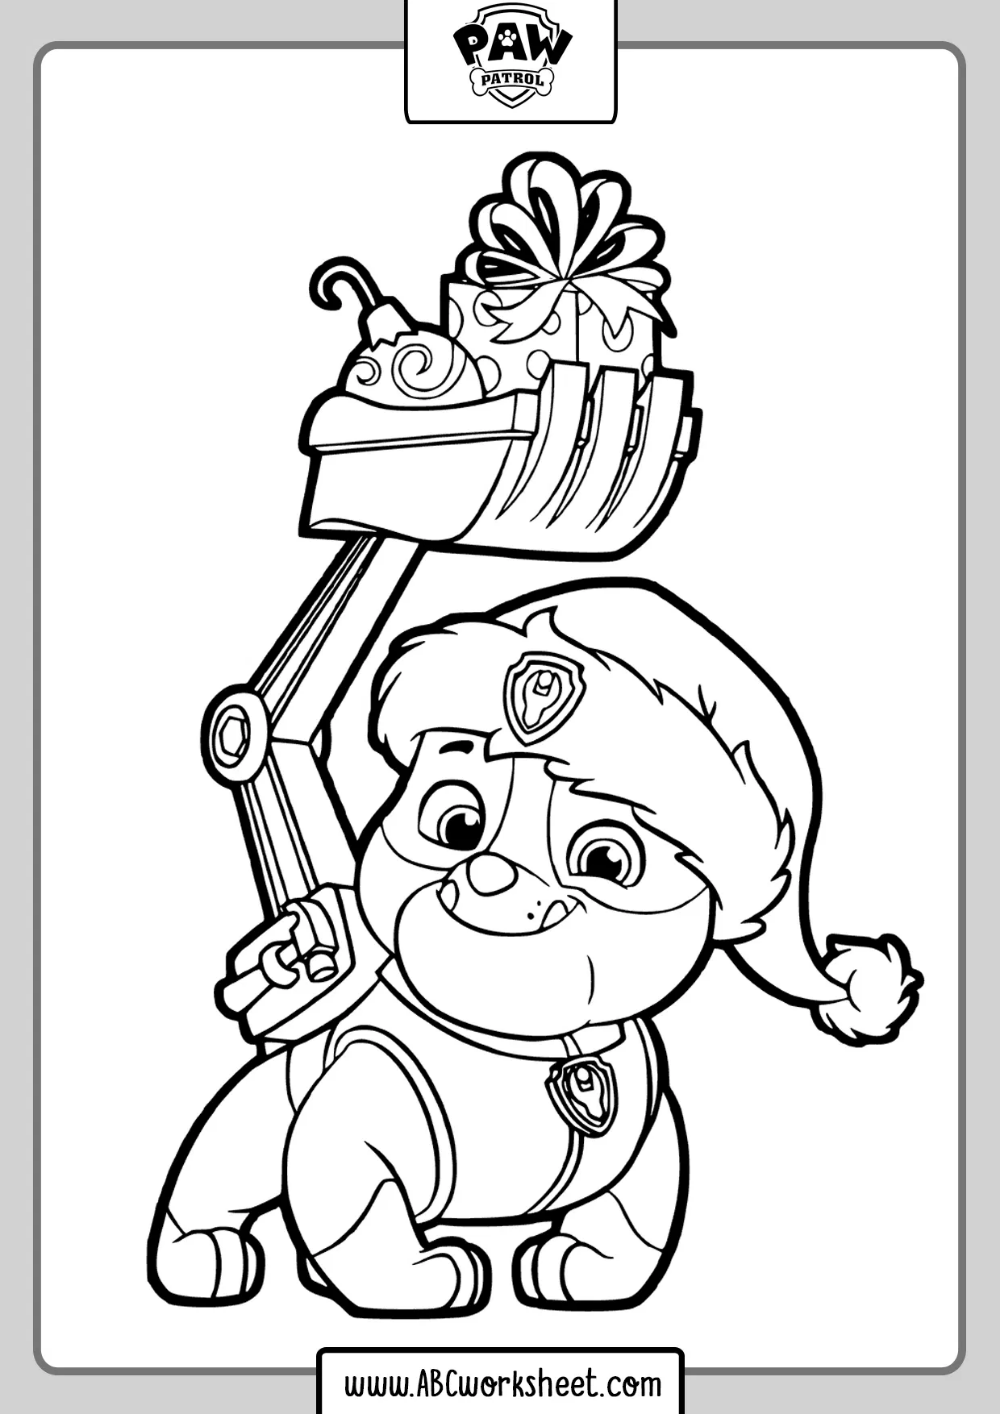 Zuma Paw Patrol Drawings For Coloring In 2020 Paw Patrol Coloring Paw Patrol Coloring Pages Nick Jr Coloring Pages